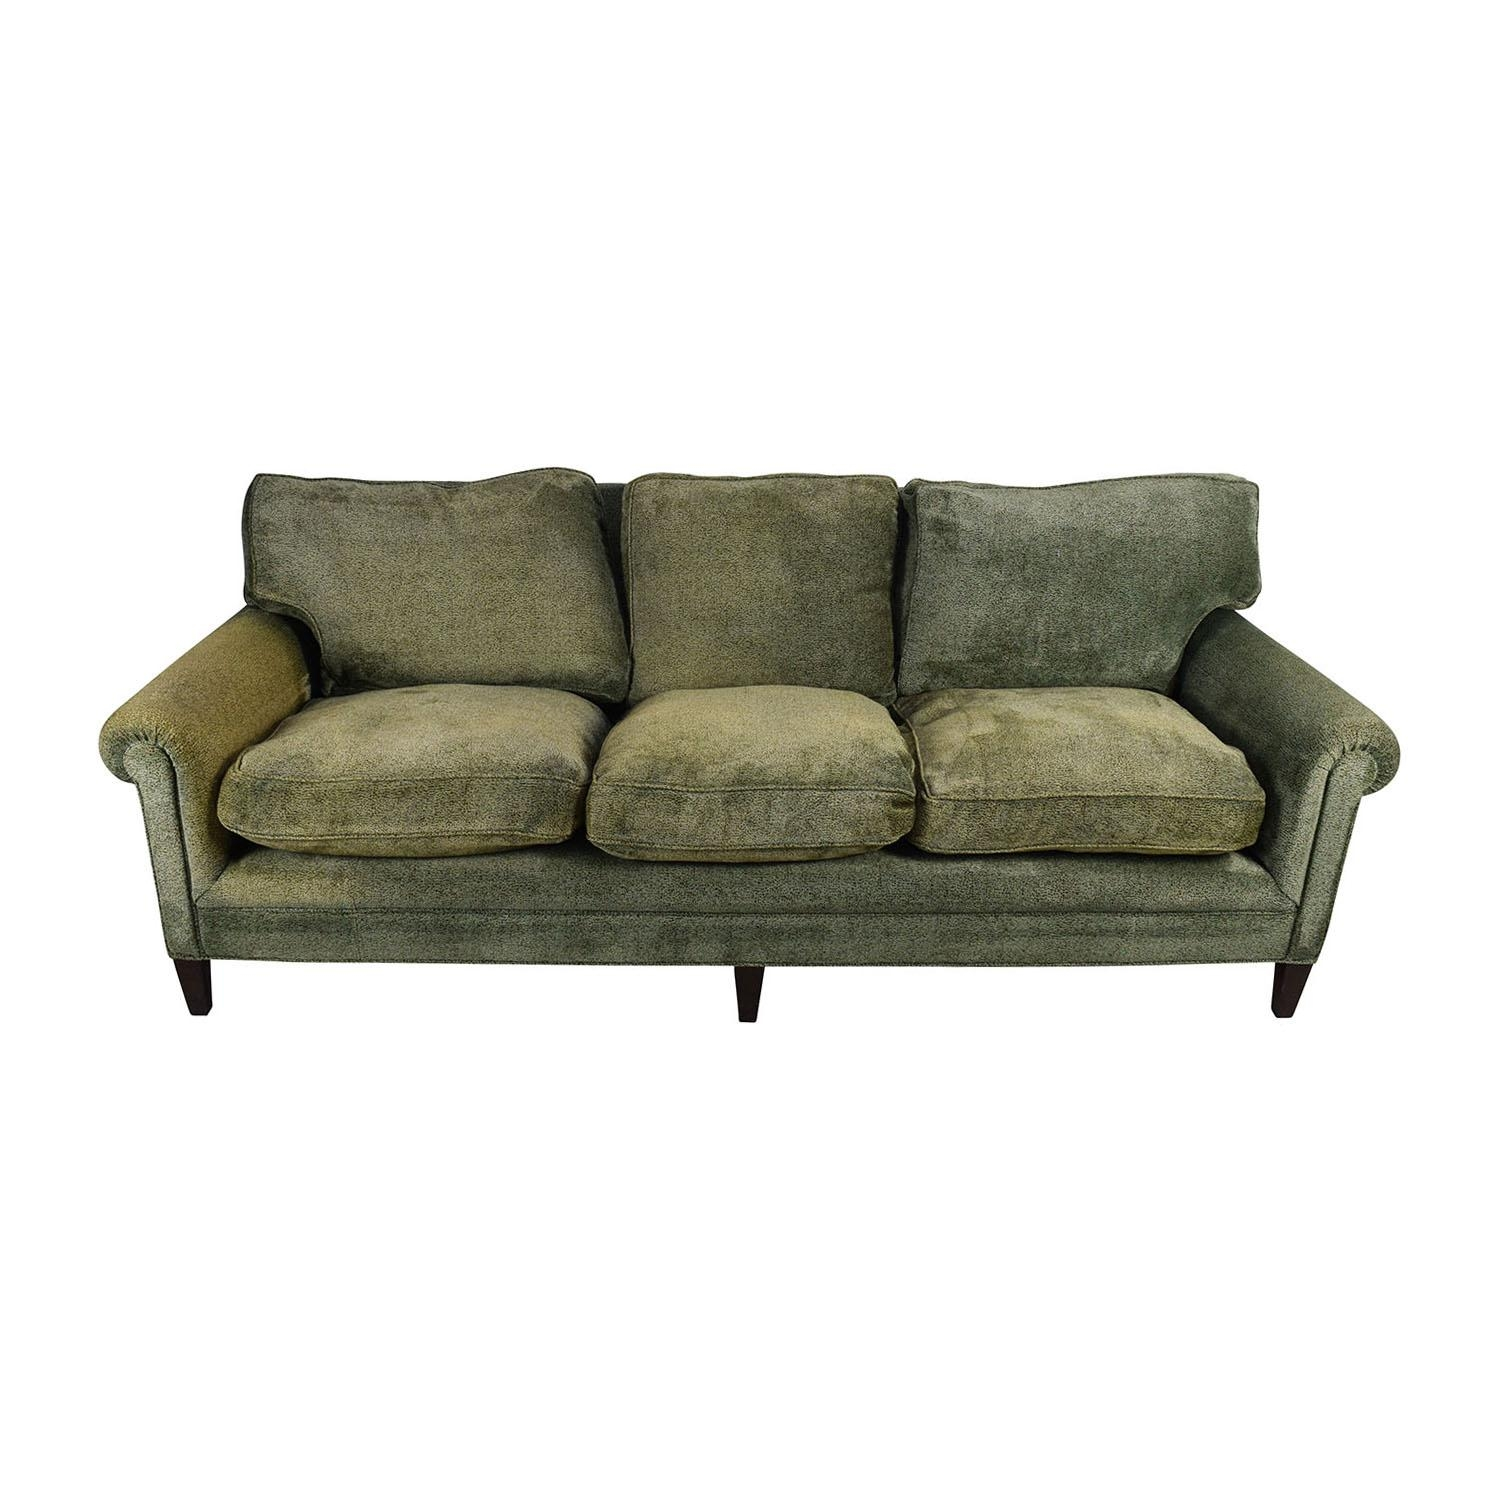 89% Off – George Smith George Smith Classic English Style Sofa / Sofas Intended For Classic Sofas For Sale (Image 5 of 20)